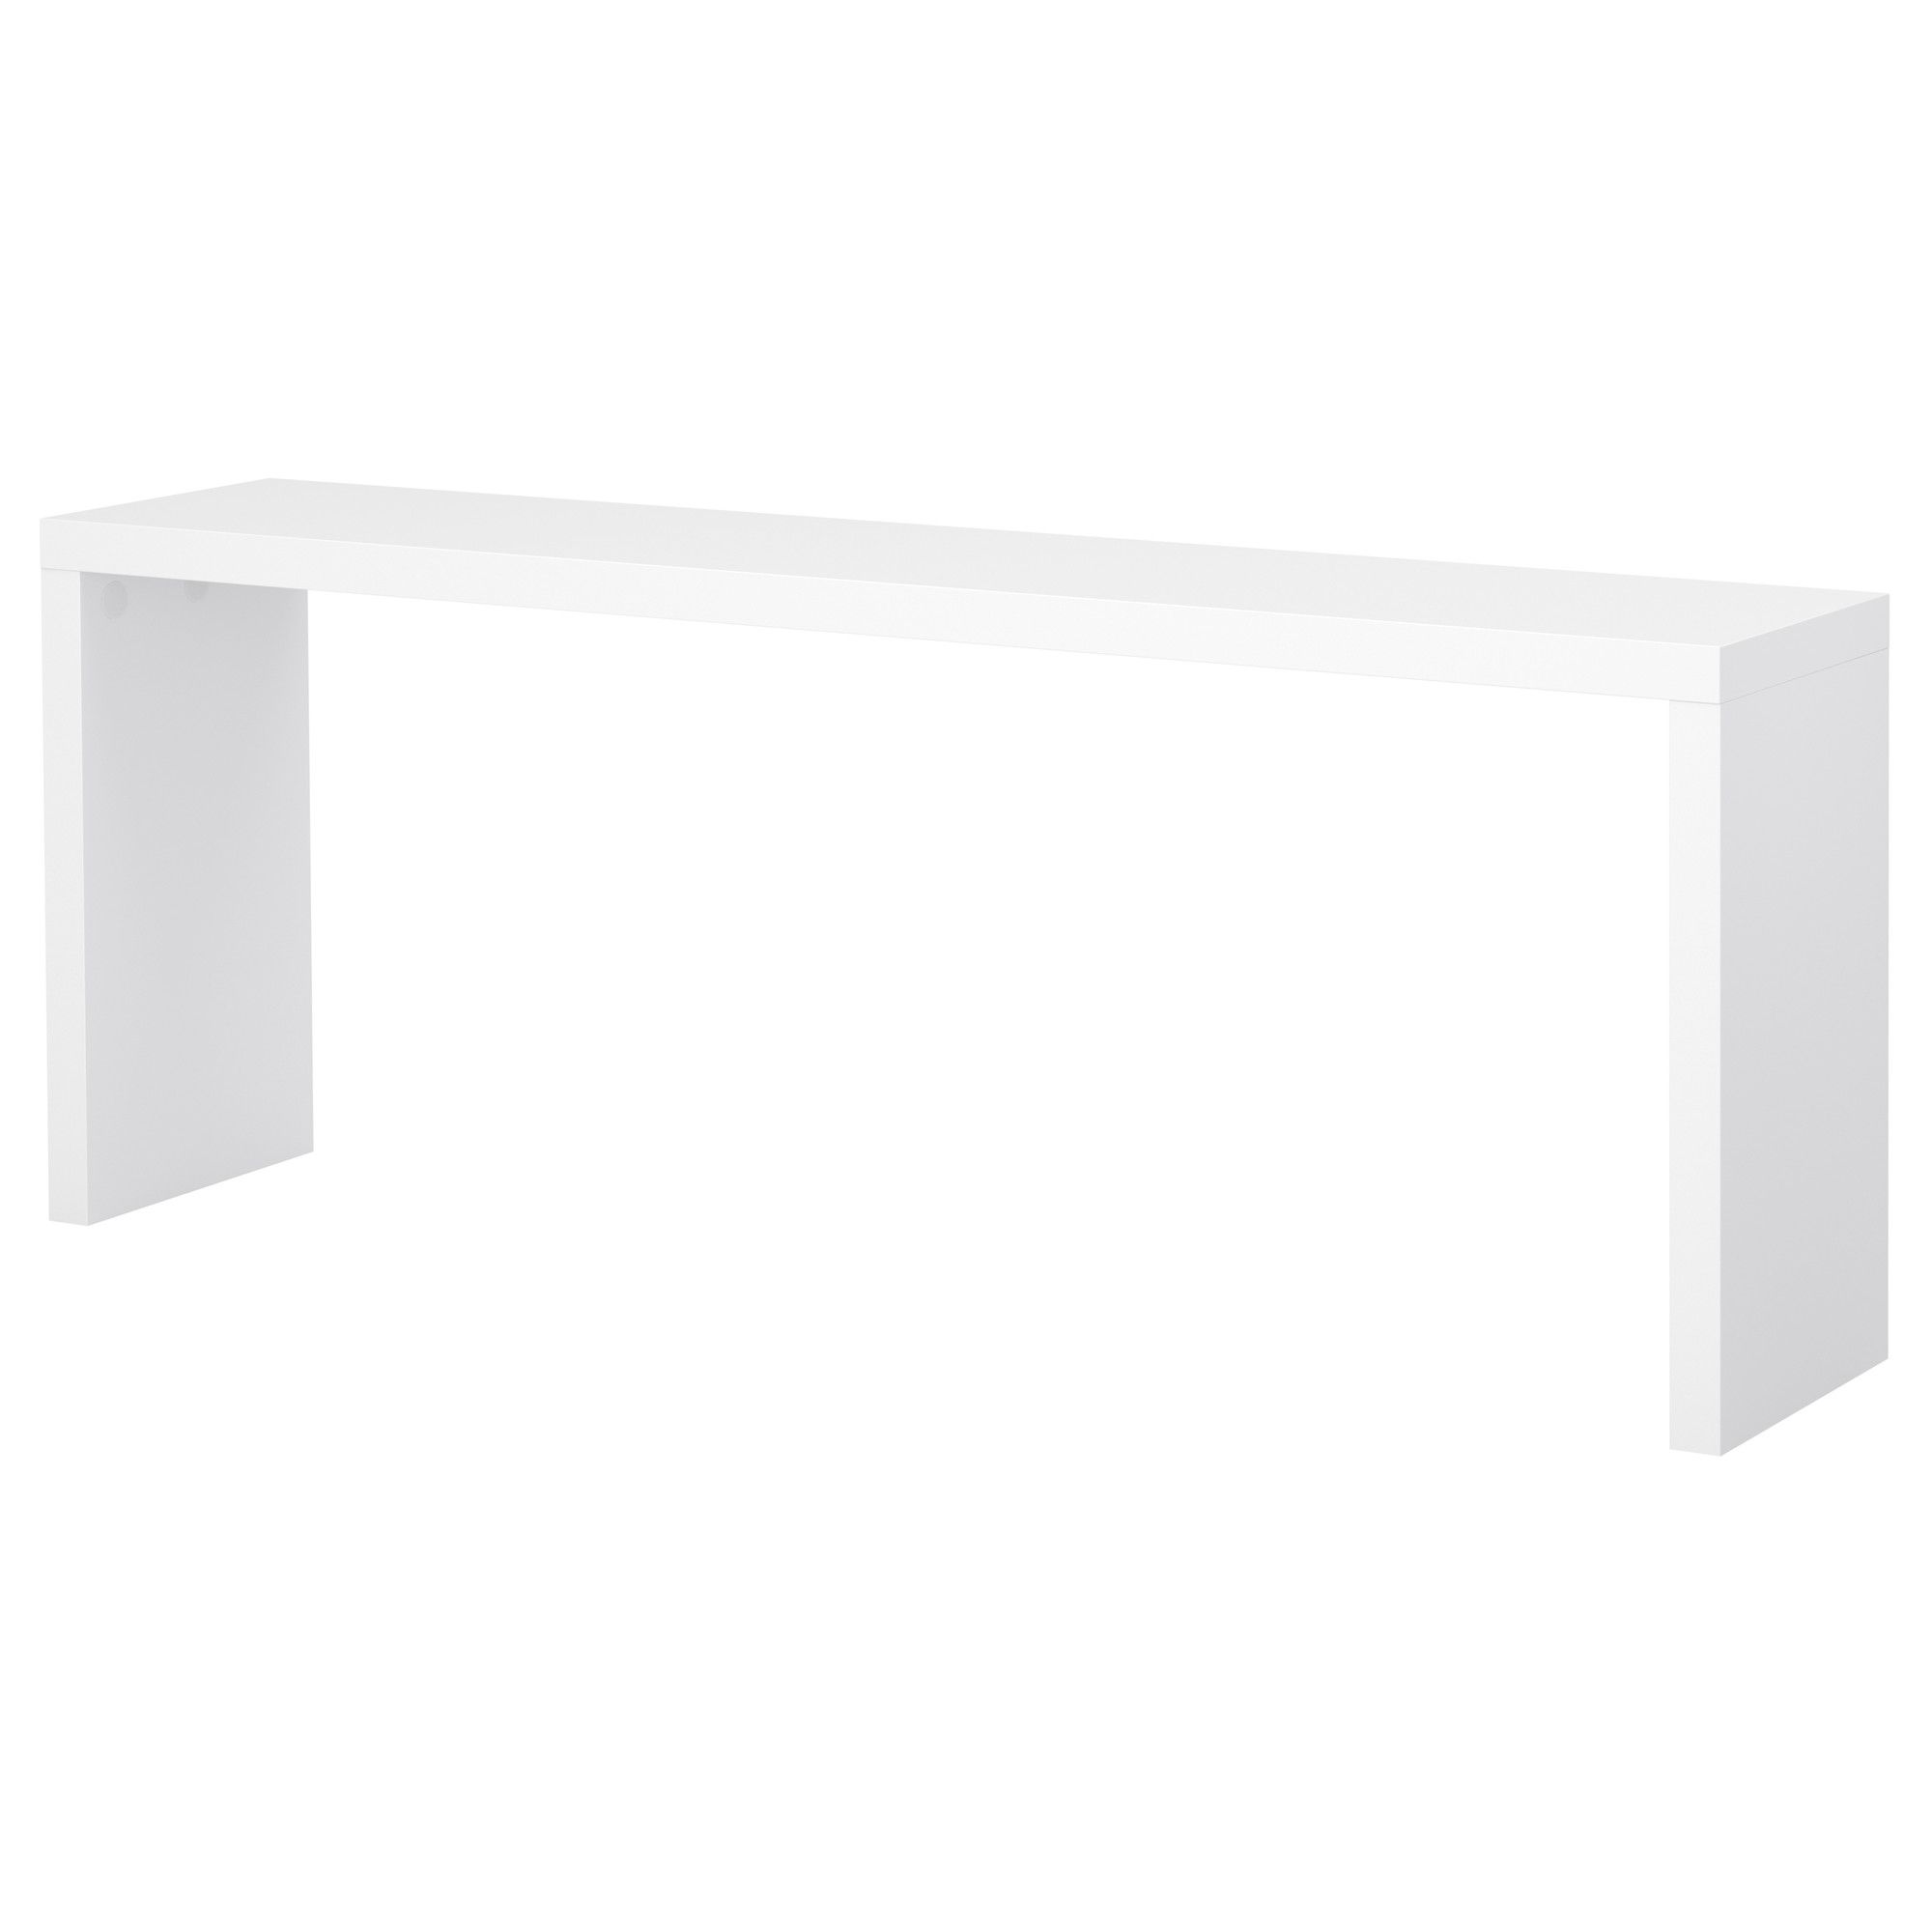 Table D'appoint Ikea Malm Table D Appoint Craft Me Up Lit Ikea Table D Appoint Ikea